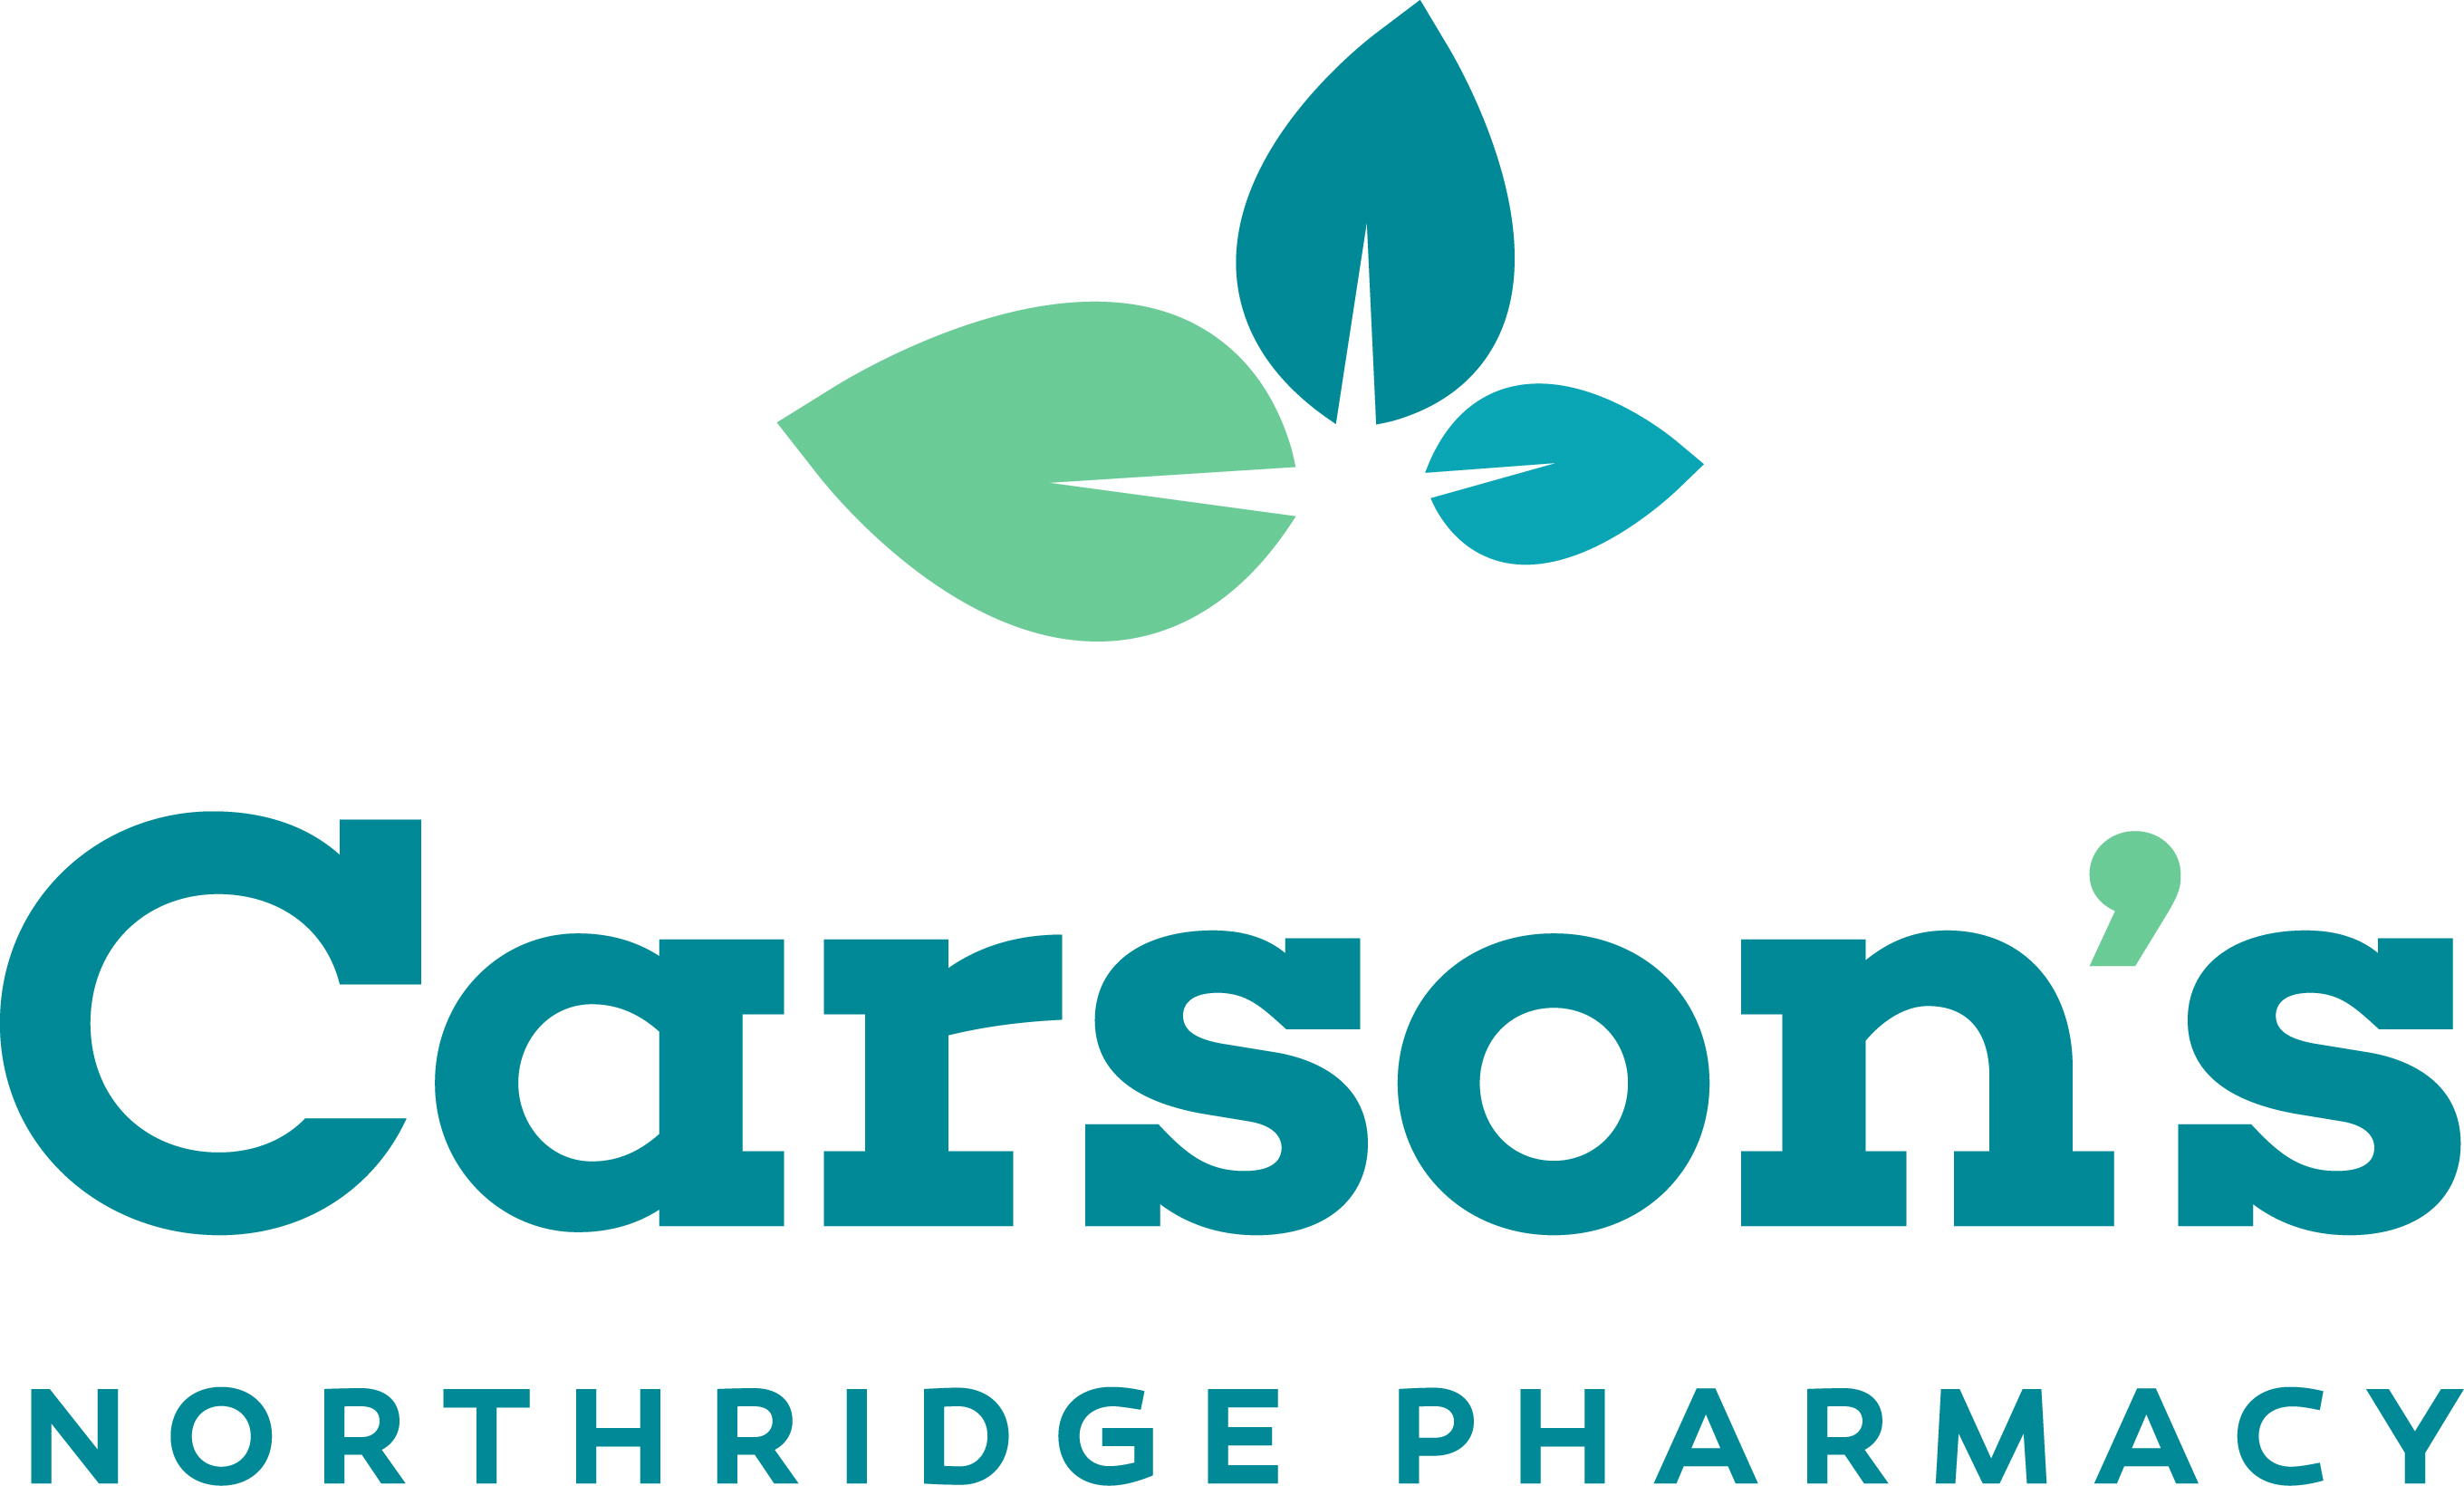 Carson's Northridge Pharmacy